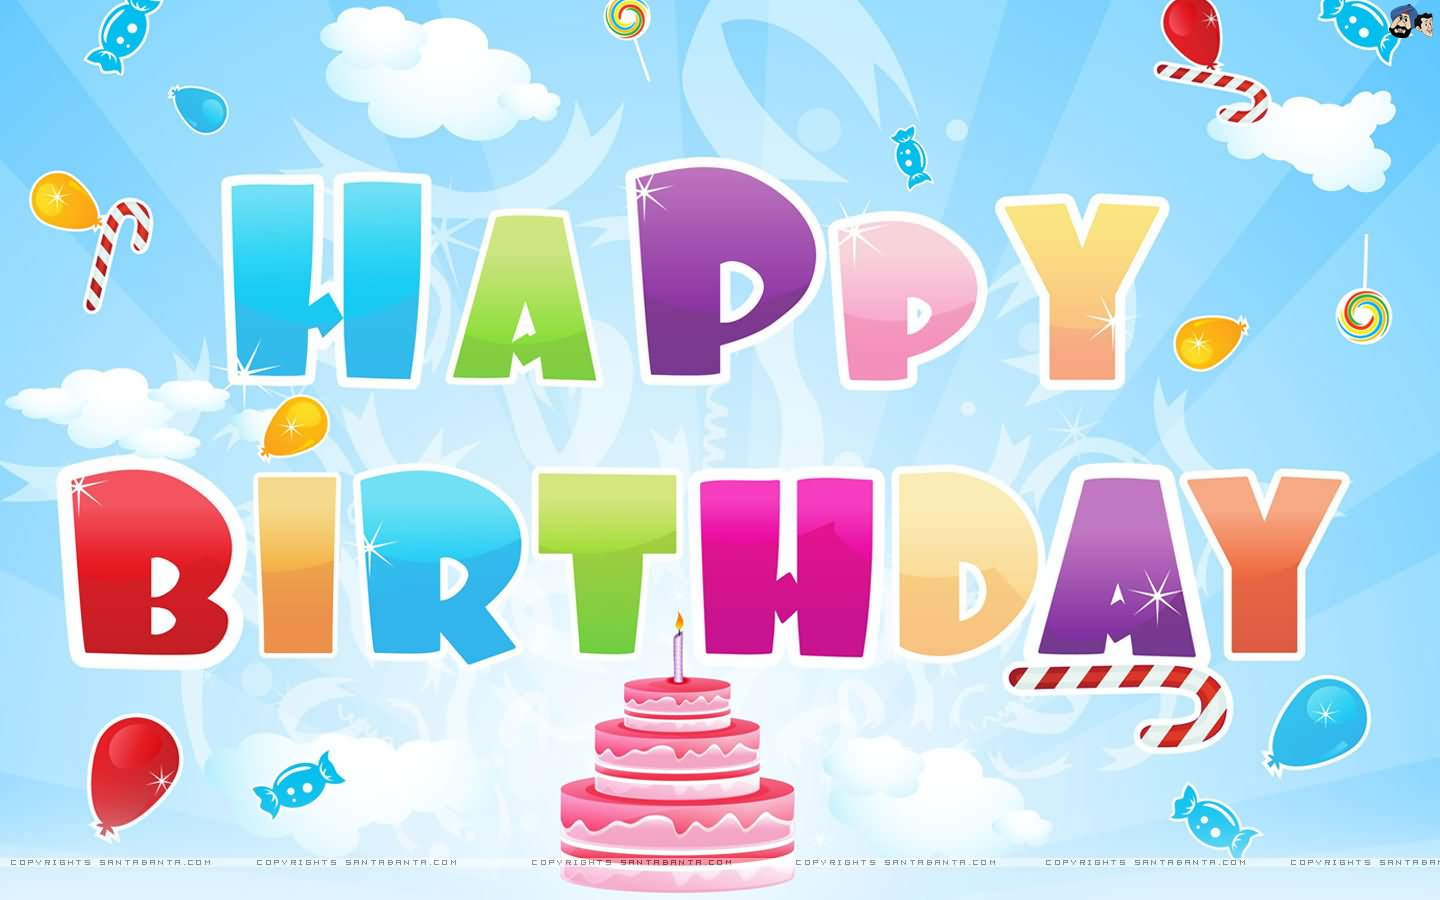 Happy Birthday Wallpapers For Desktop Live HD Wallpaper 1440x900